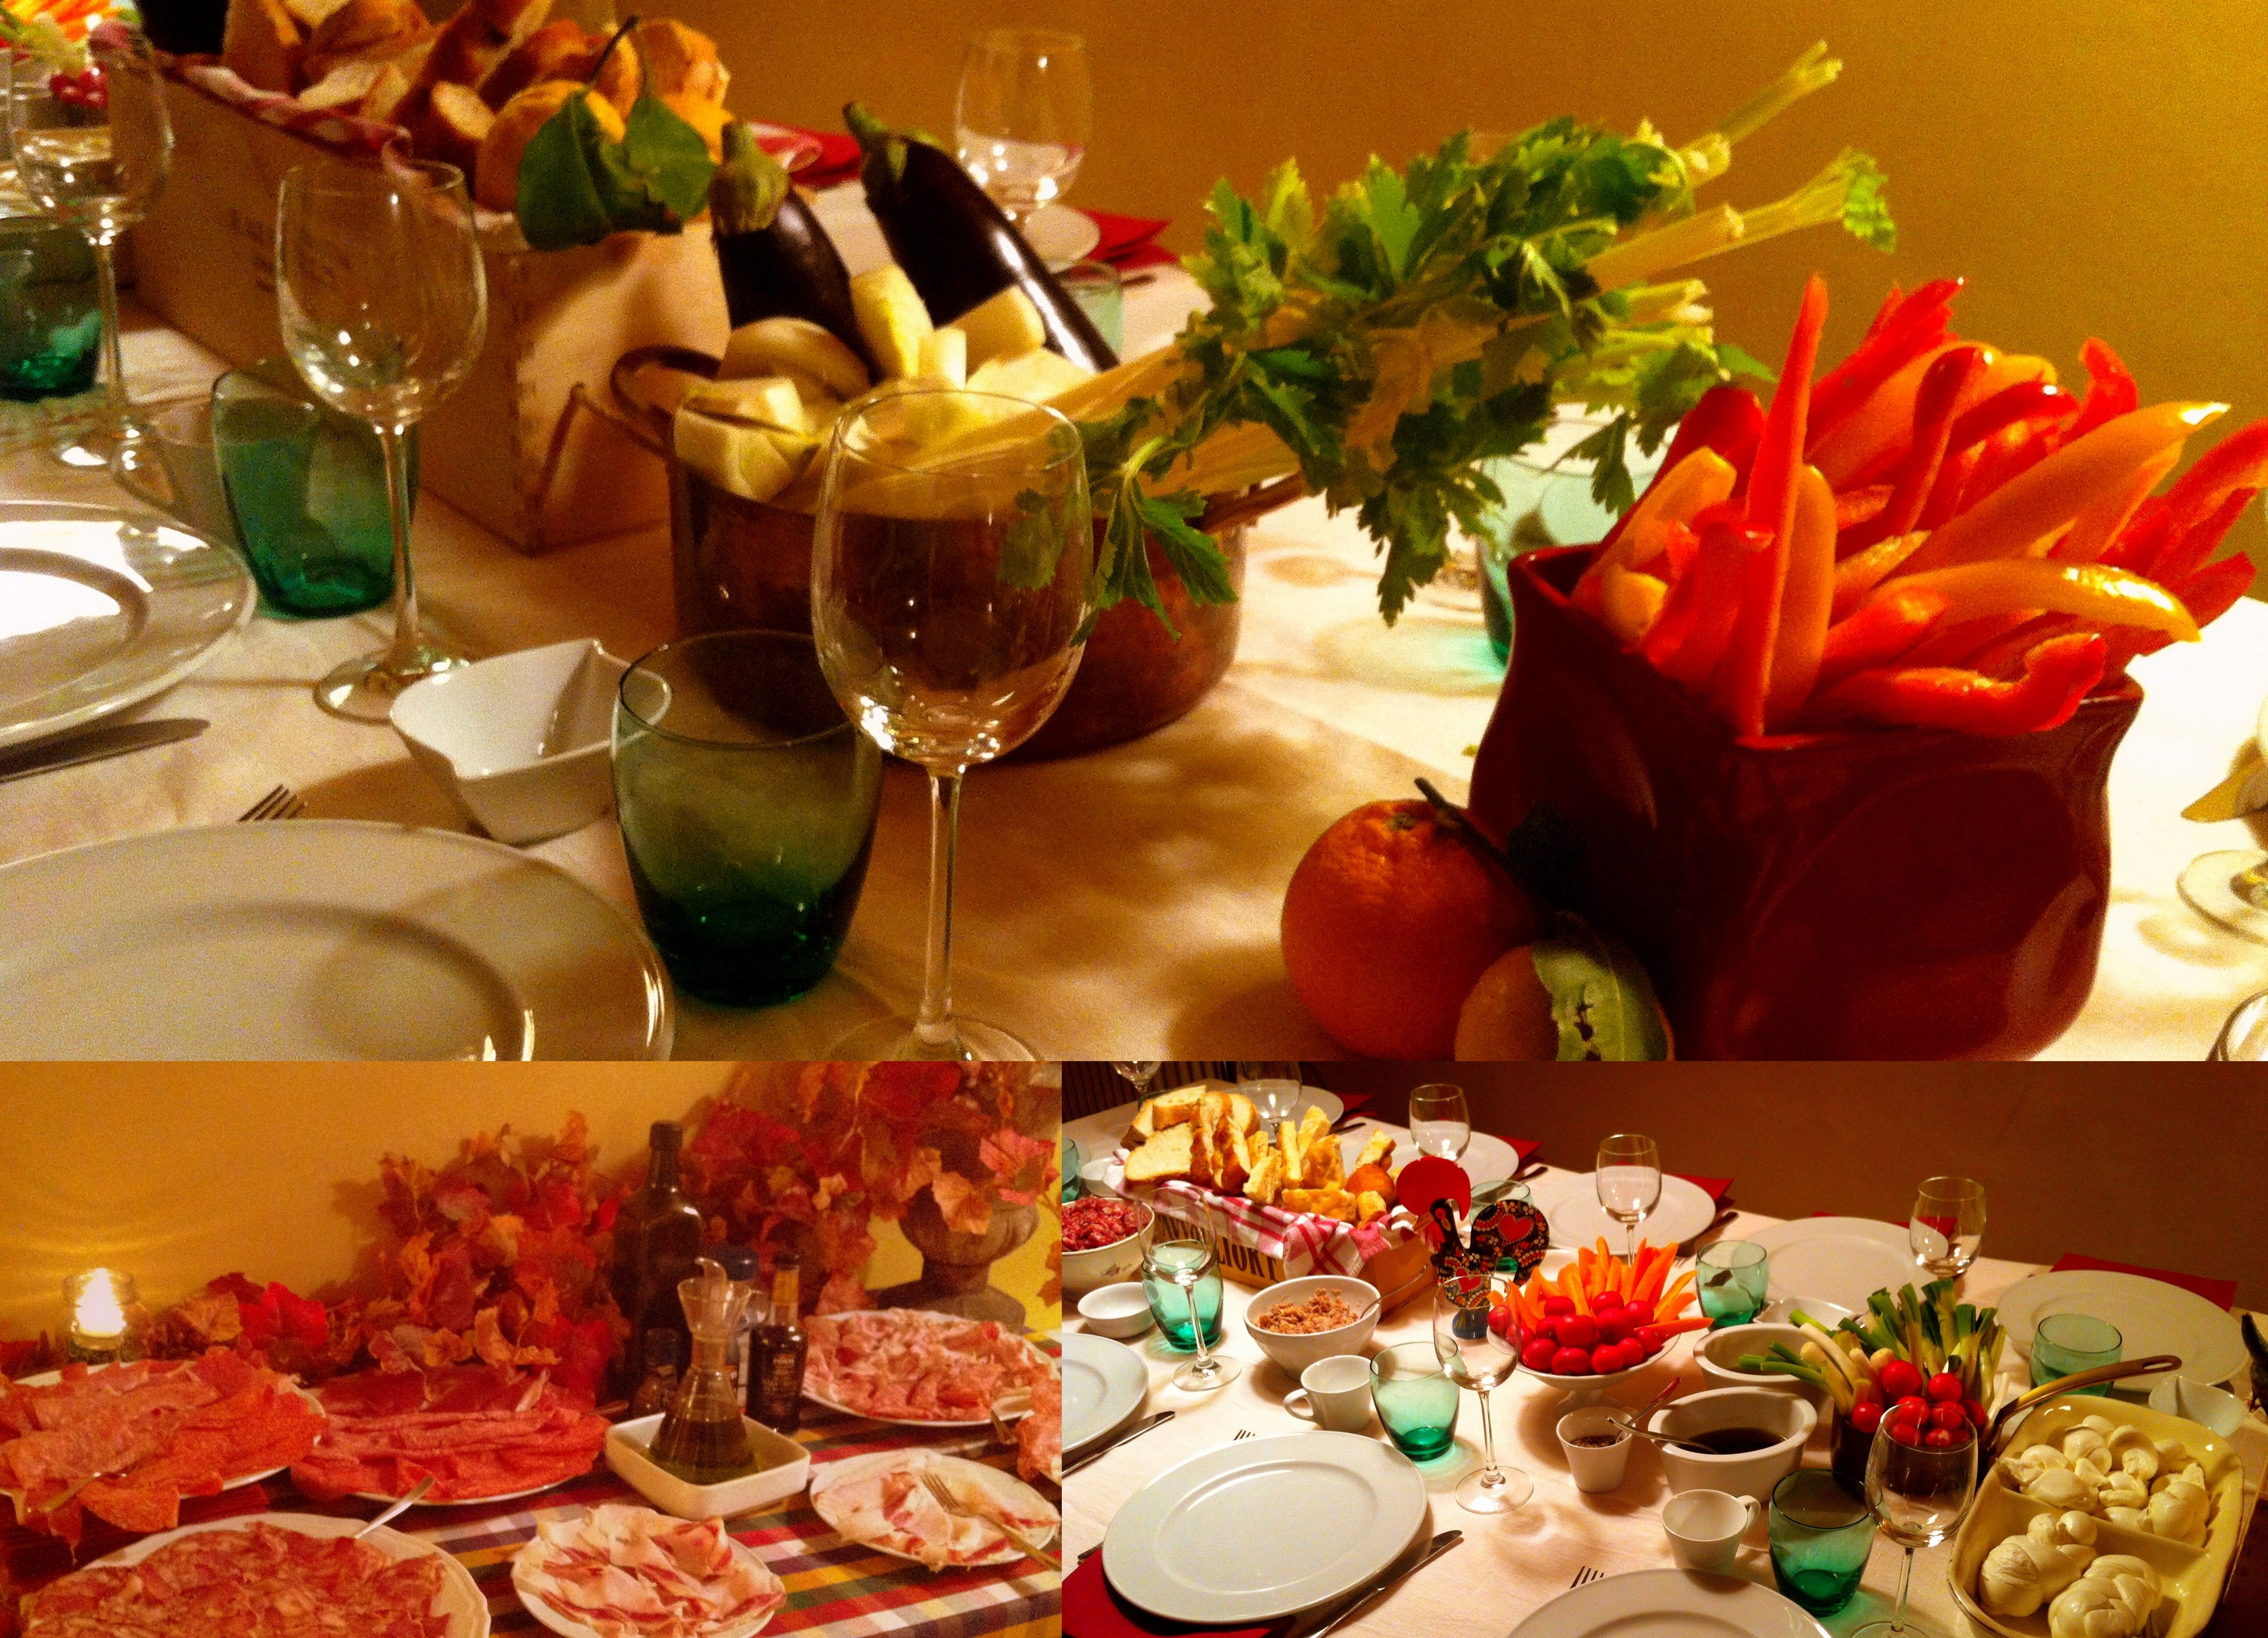 """Friday night, with friends, at home: Tuscany and it's products as """"Special guests""""."""